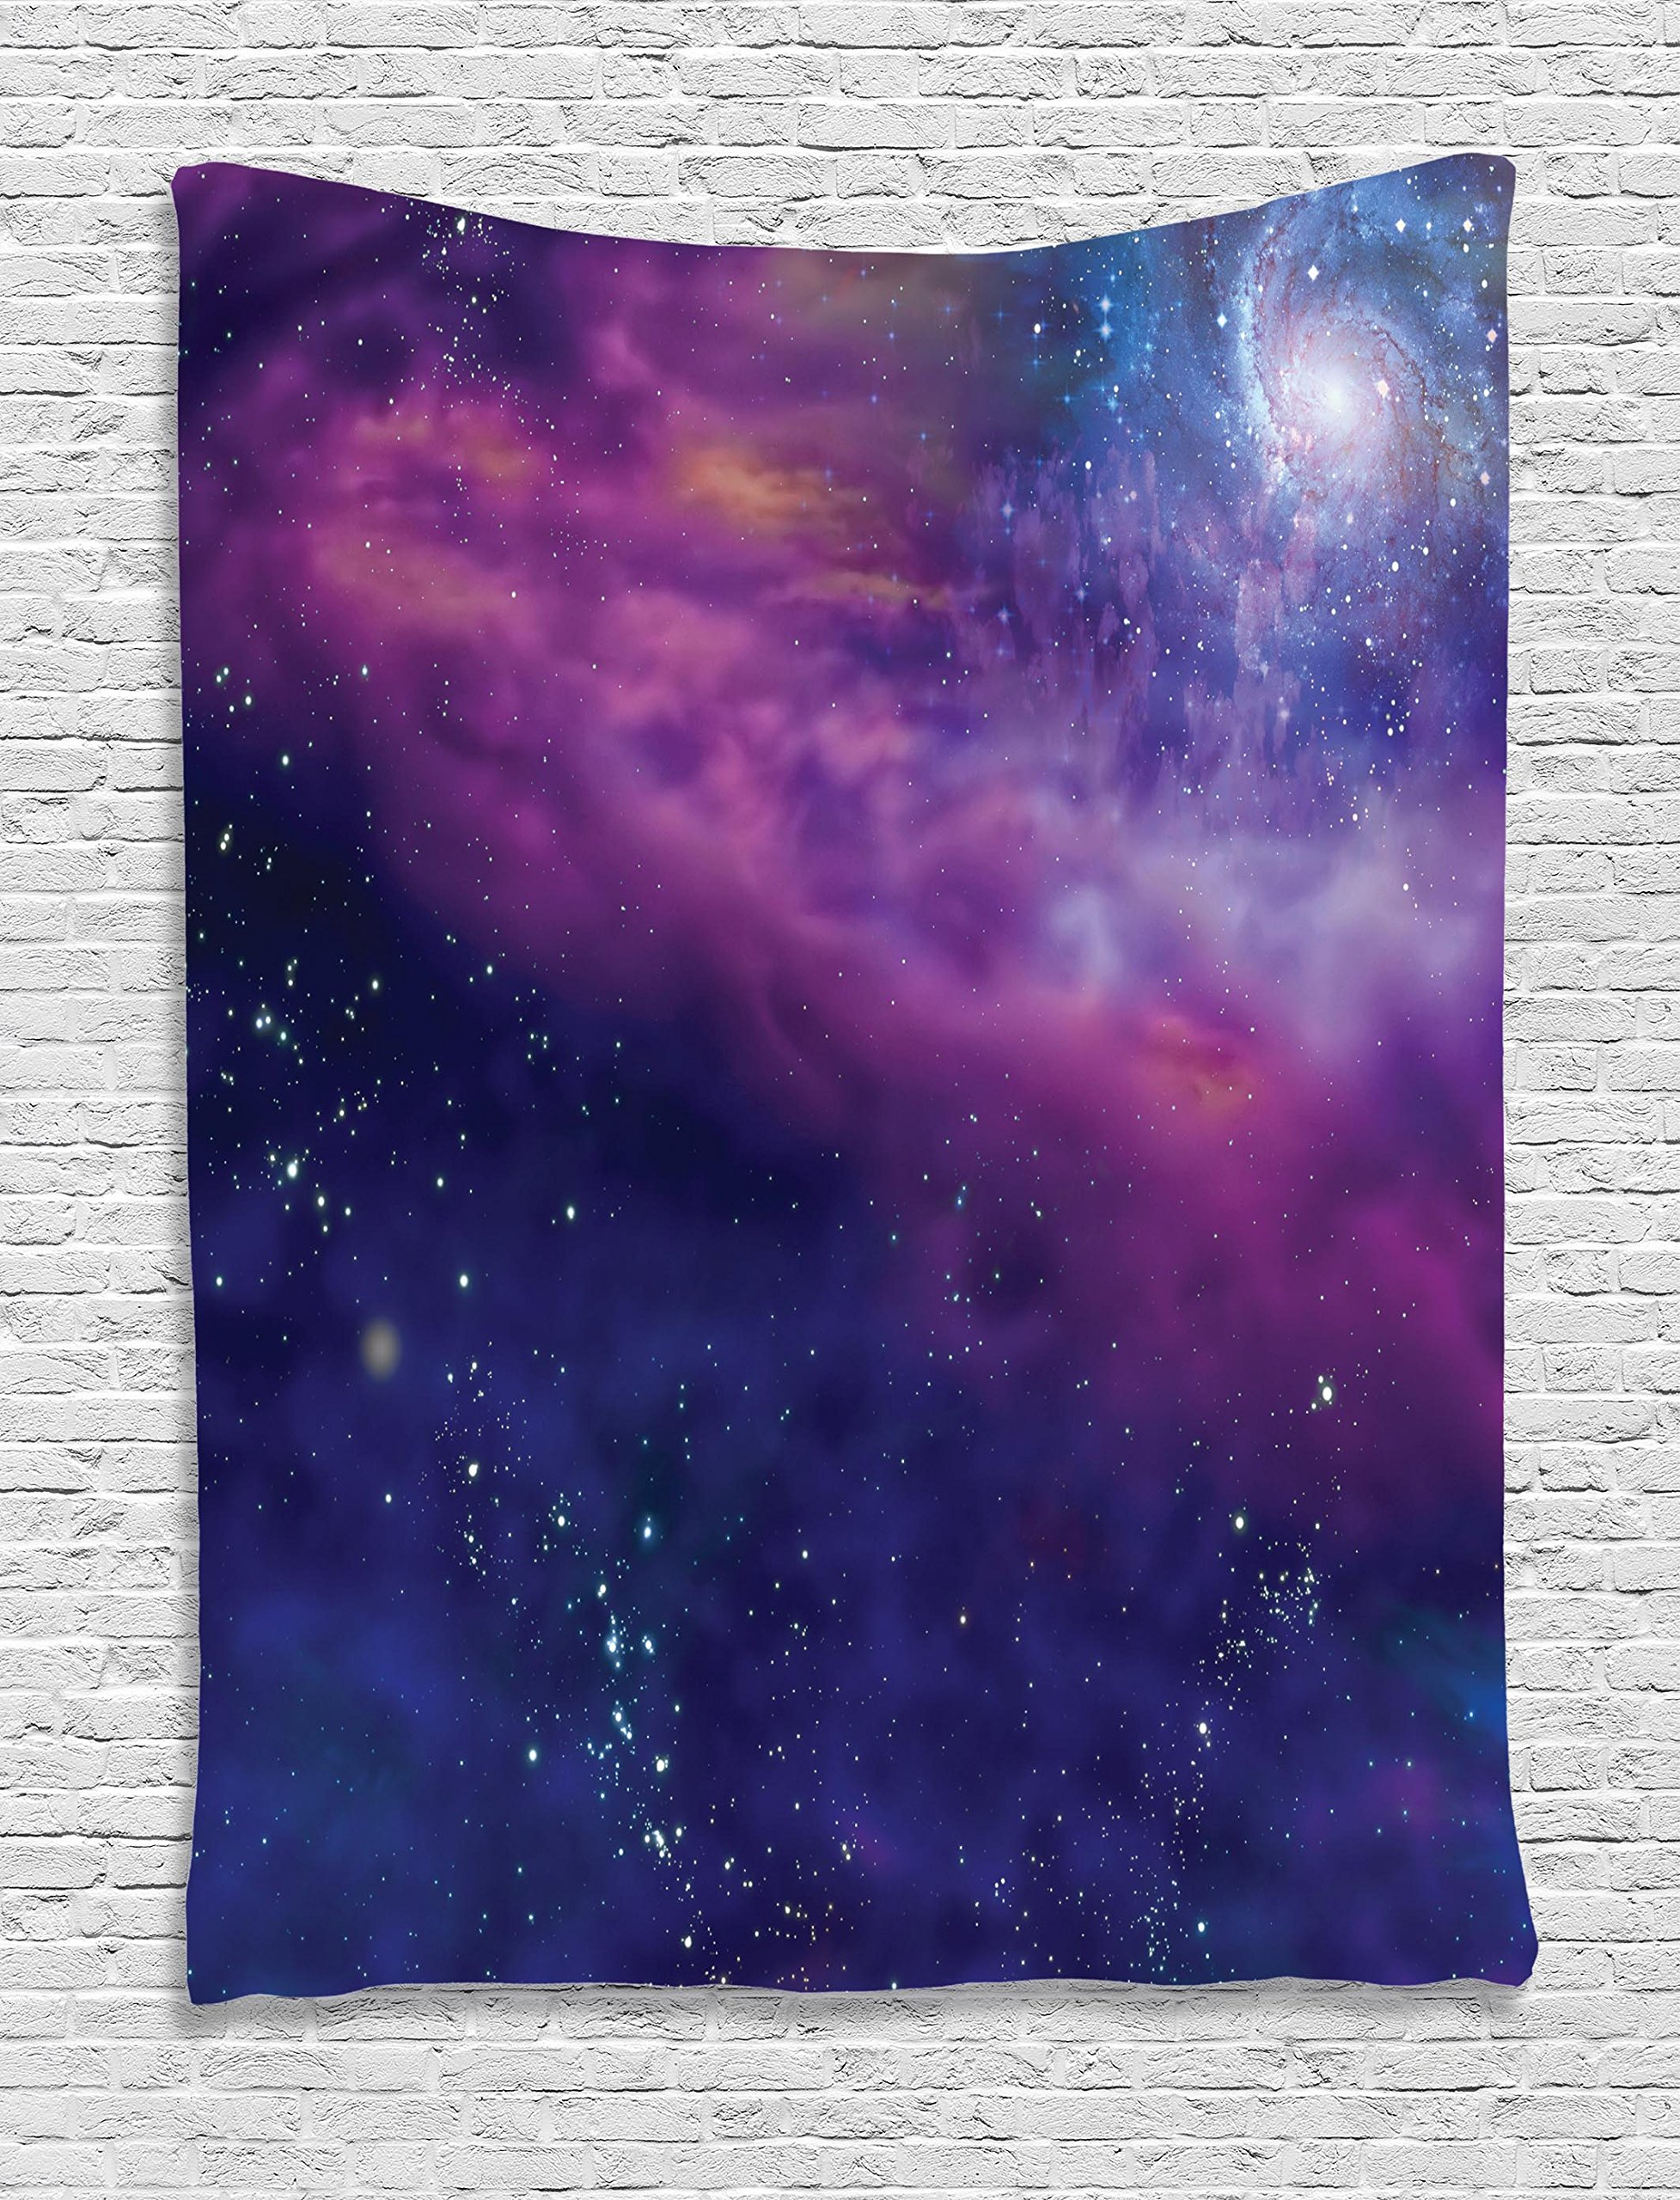 Ambesonne Outer Space Decor Tapestry, Spiritual Dim Star Clusters Milky Circle Back with Solar System Elements, Wall Hanging for Bedroom Living Room Dorm, 40 W x 60 L inches, Purple Blue